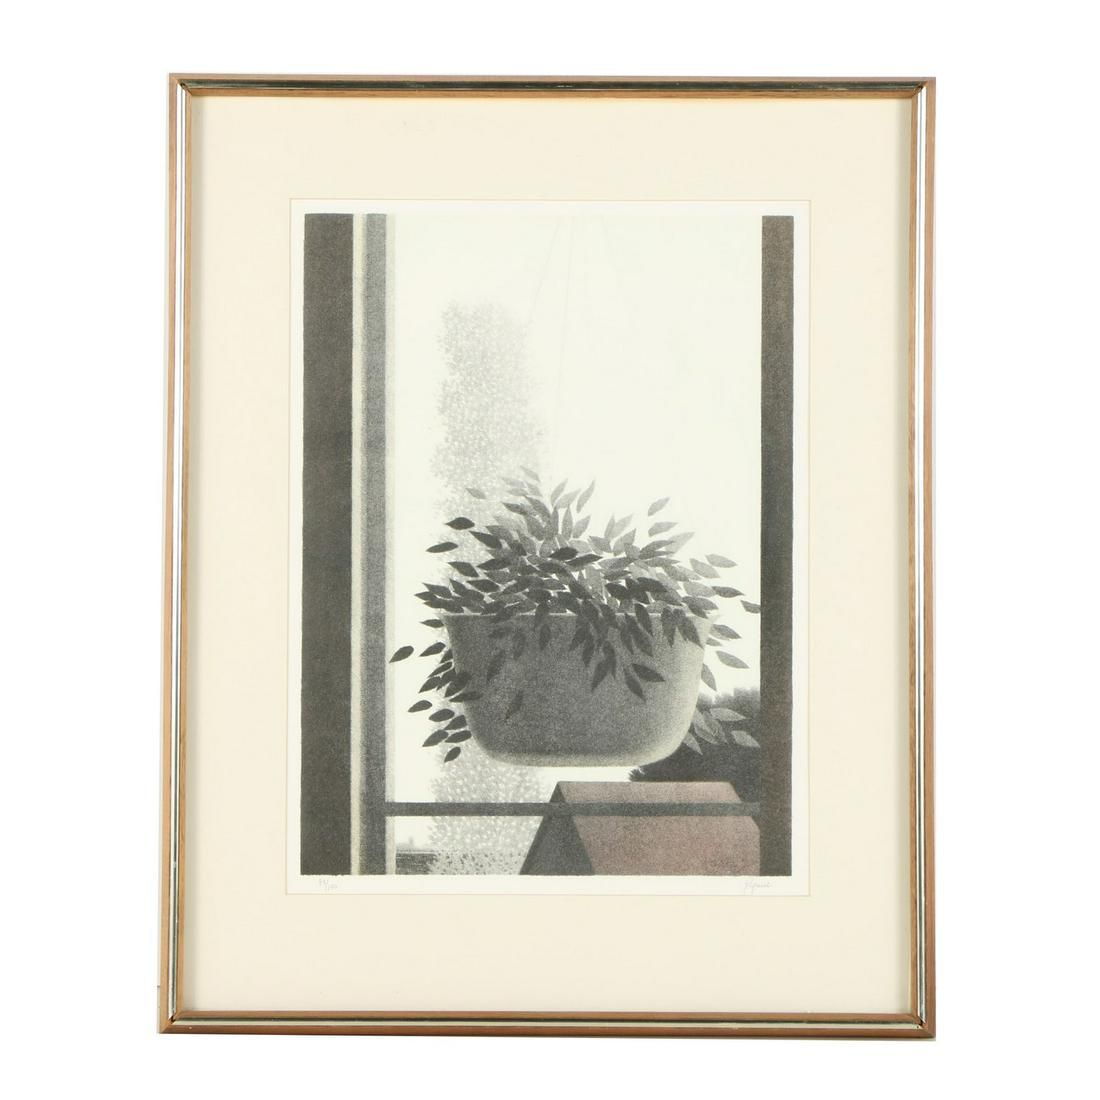 Window with Suspended Plant by Robert Kipniss (1931 - )